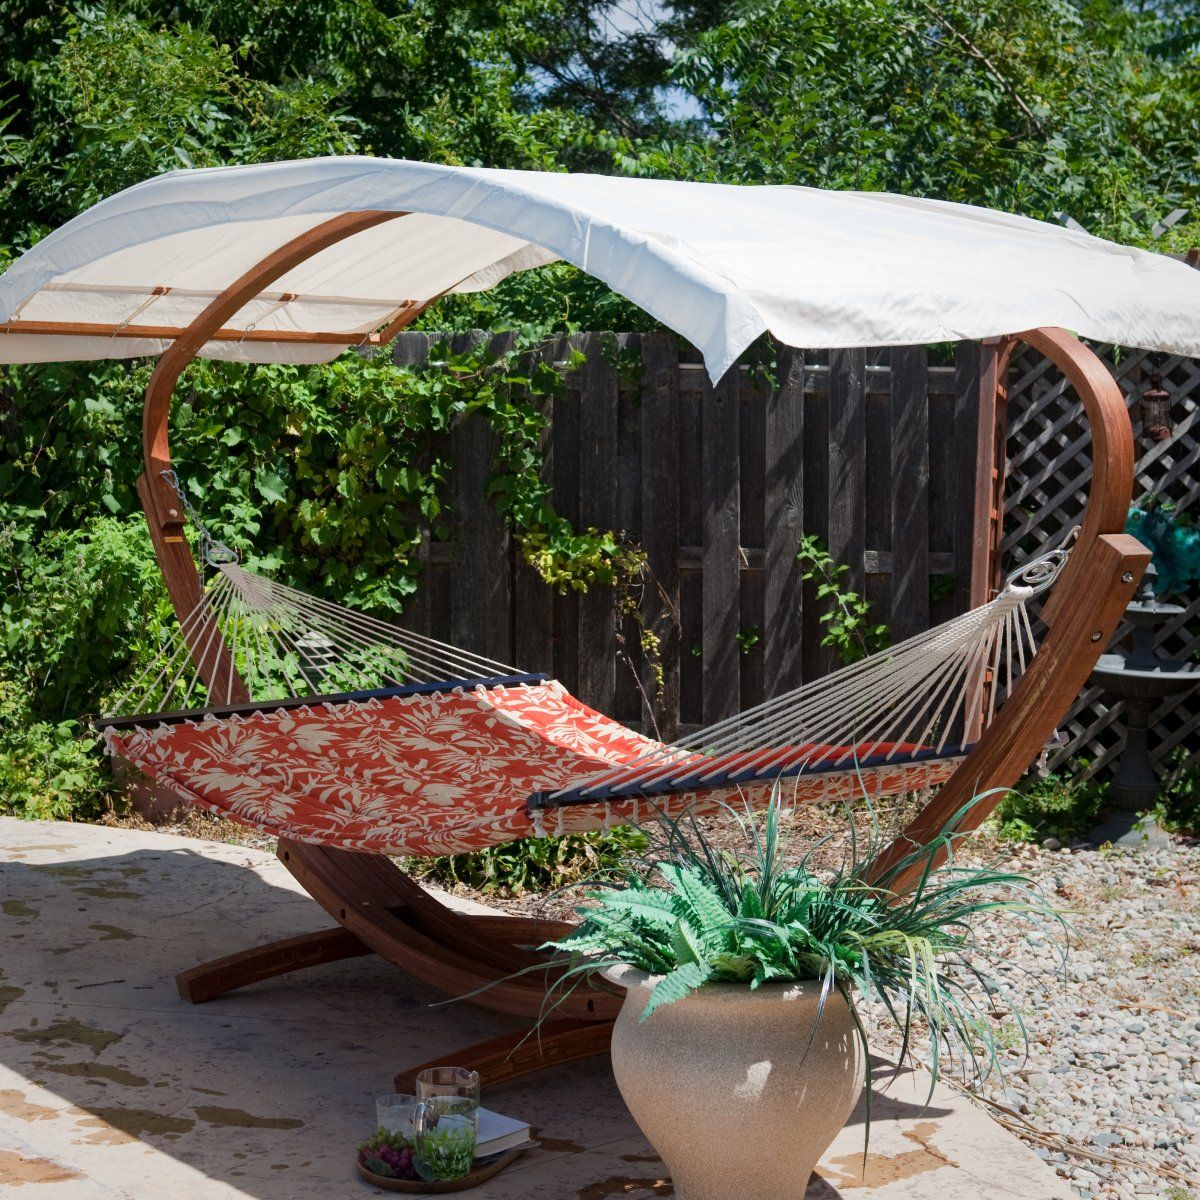 Bliss Hammocks Wooden Arc Hammock Stand with Canopy : hammock with canopy and stand - memphite.com